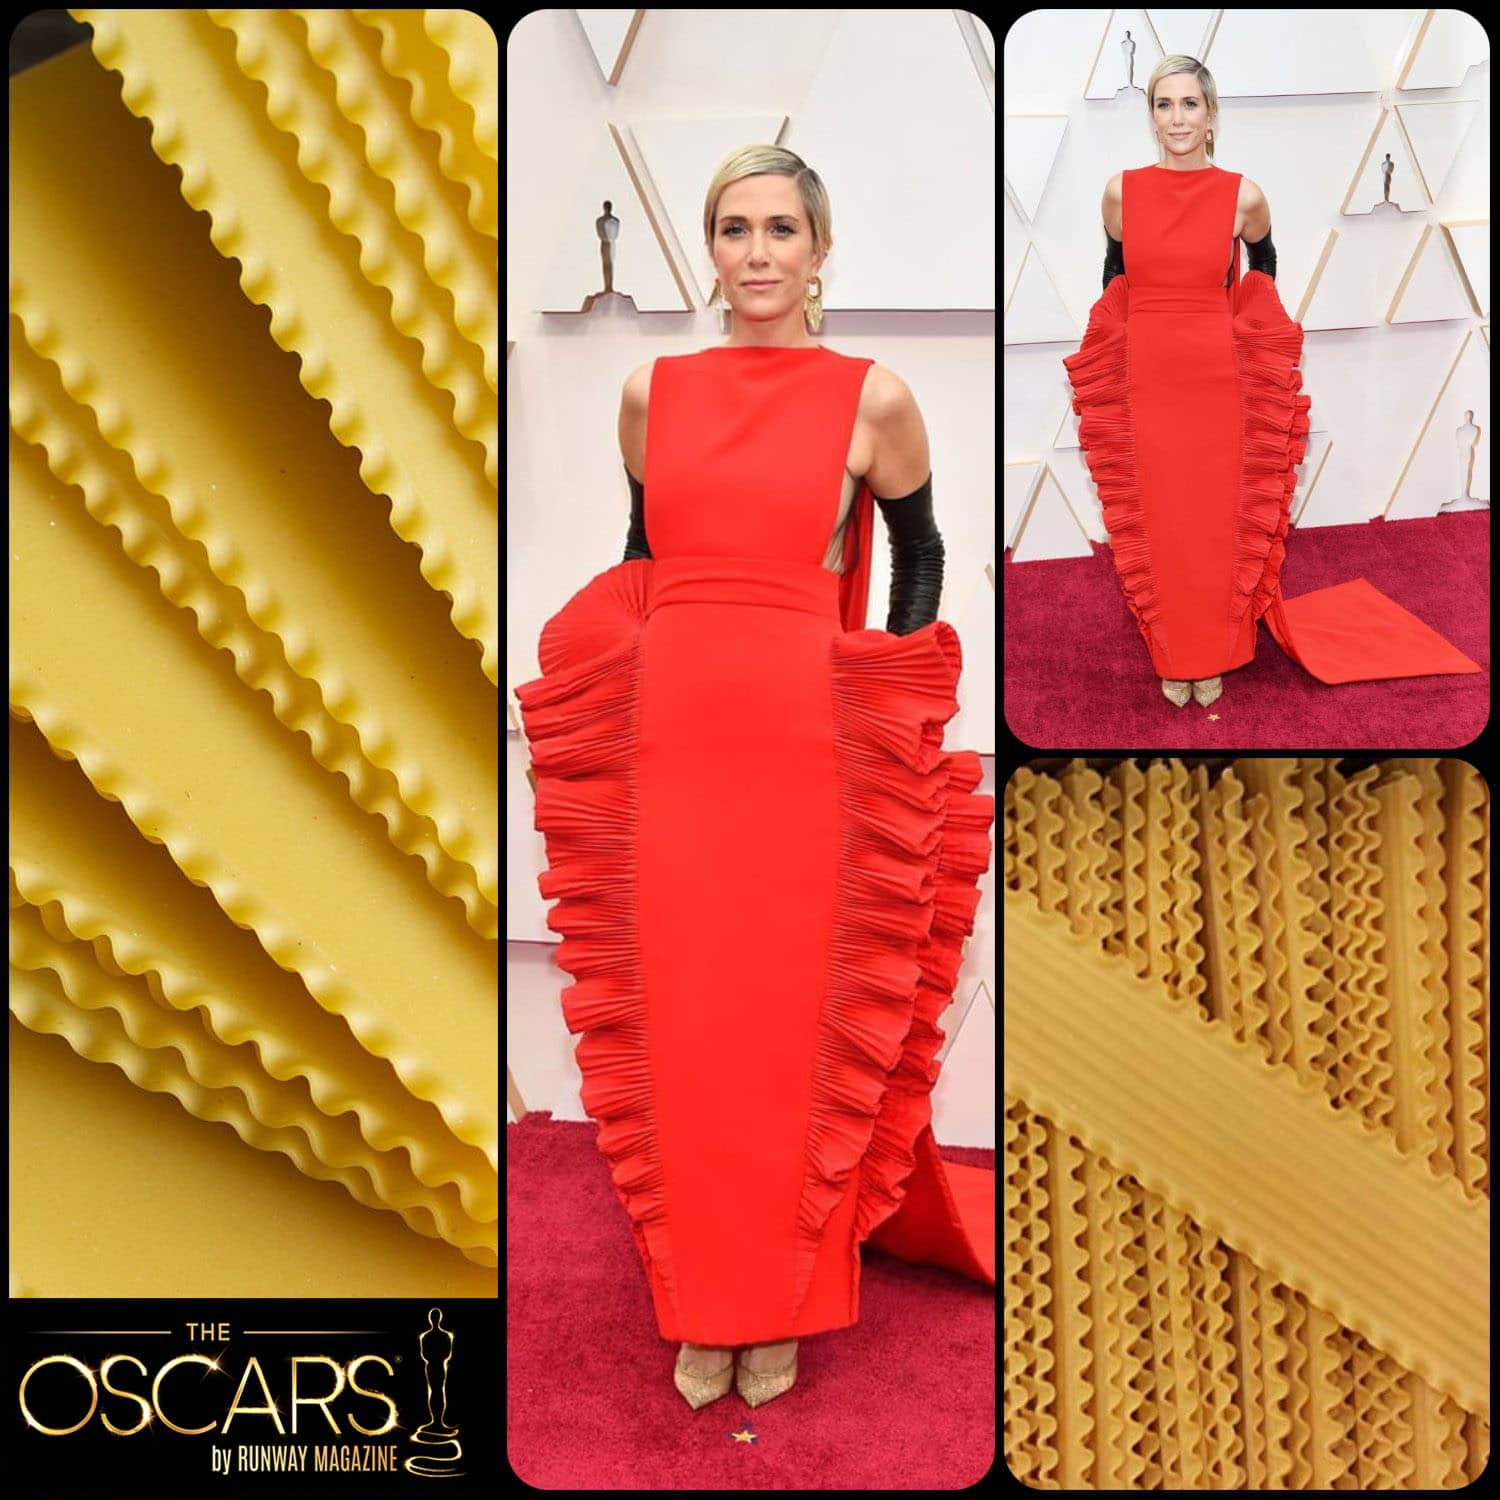 Kristen Wiig in Lasagna Valentino Haute Couture dress at the 2020 Oscars by RUNWAY MAGAZINE